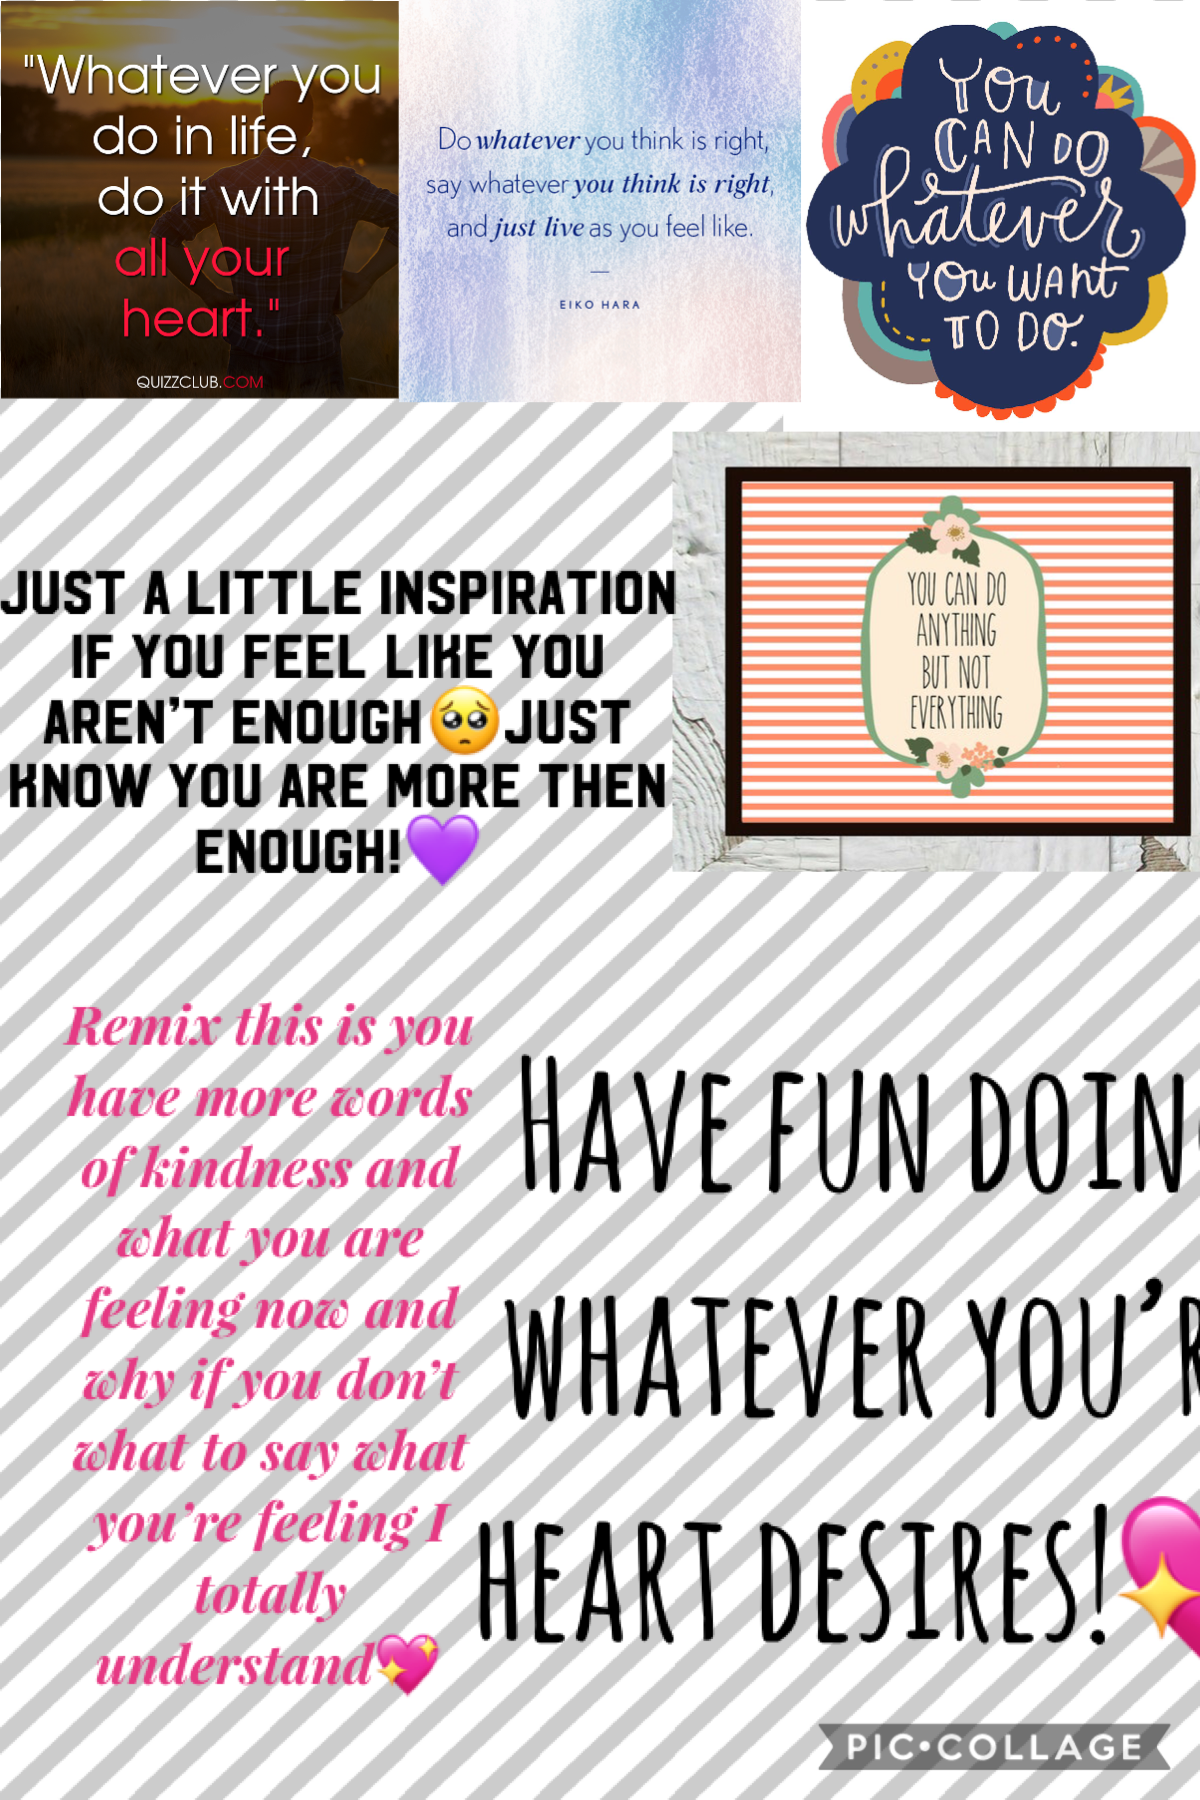 Please read everything in this collage and if you want please do the this on it it will be totally worth it!💖💖💖